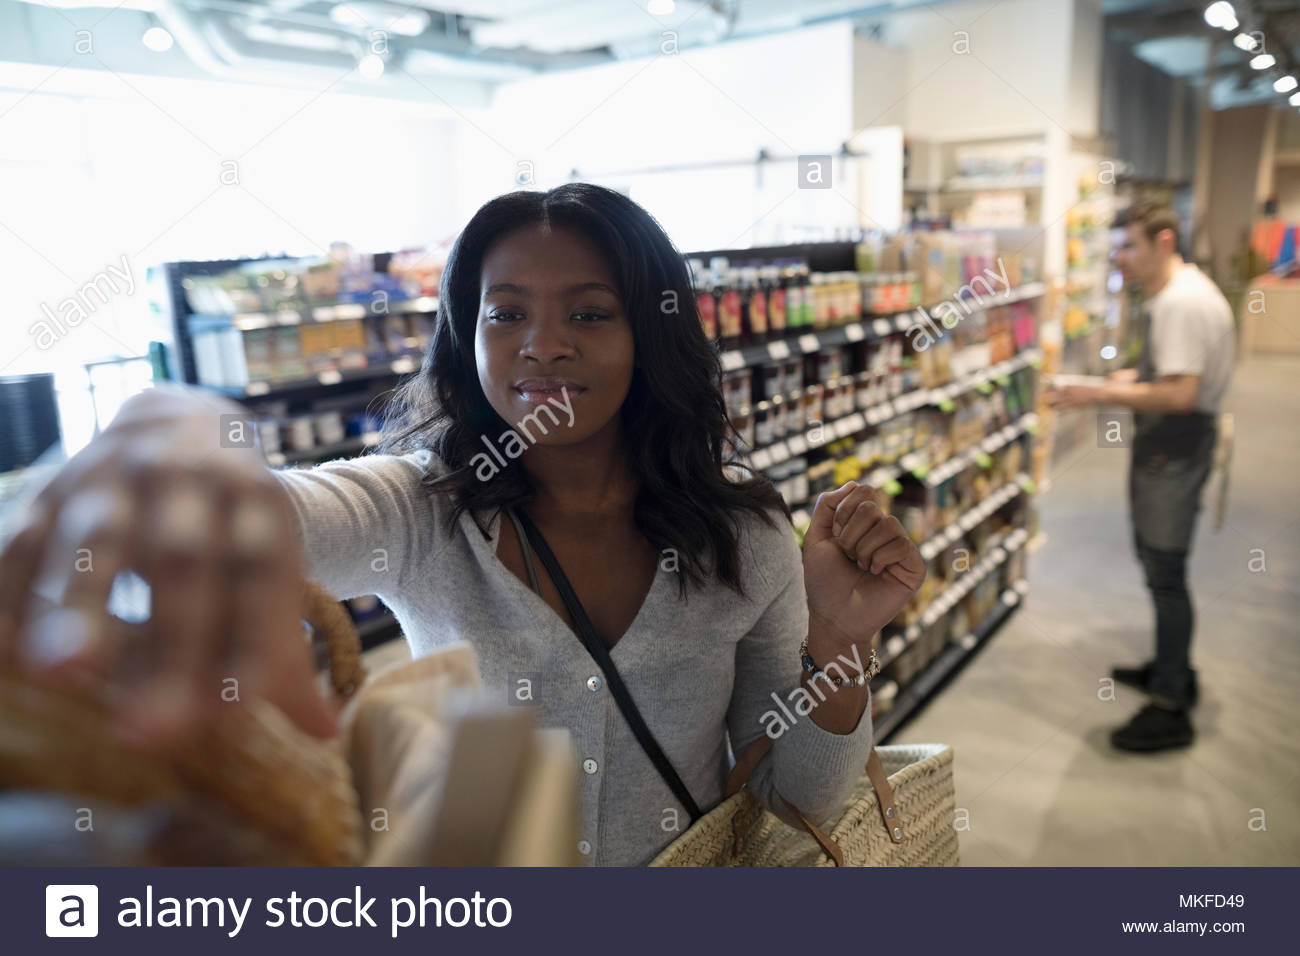 Young woman grocery shopping, reaching for bread in market - Stock Image